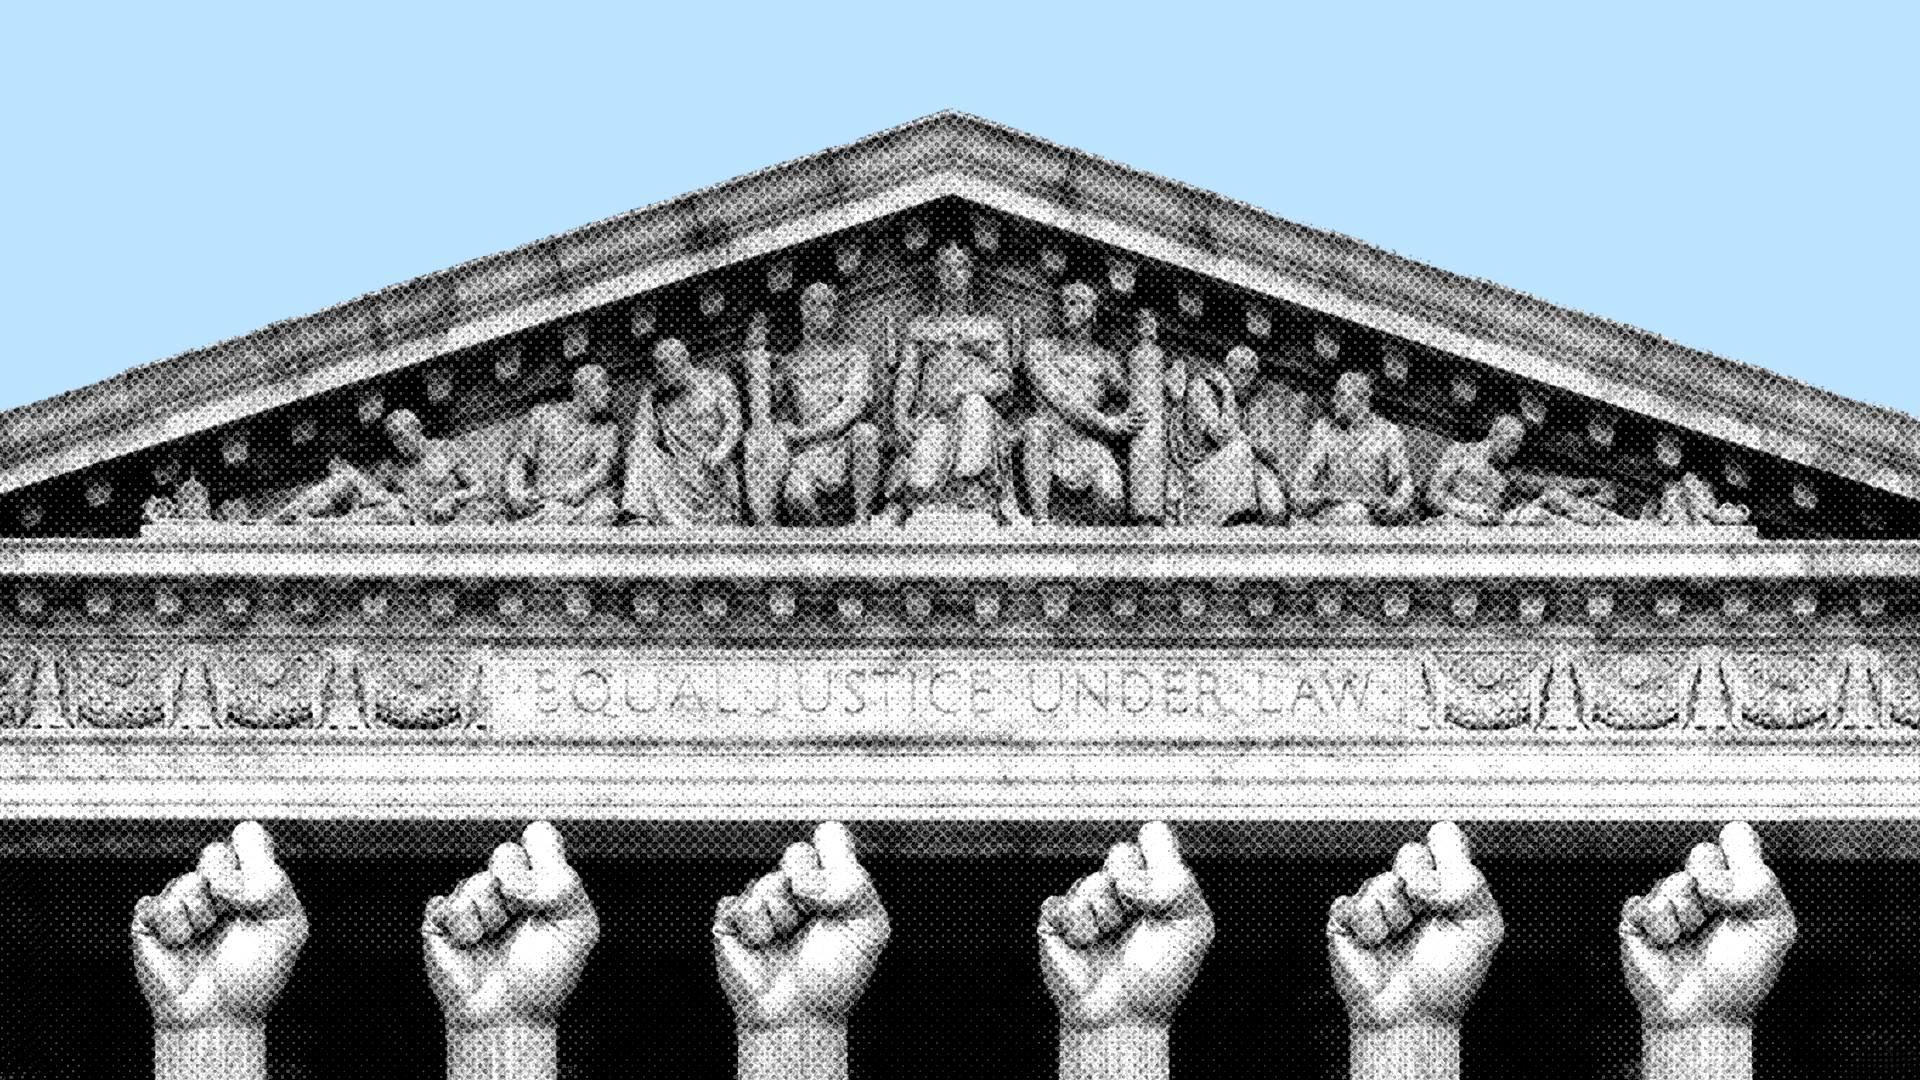 Supreme Court building with columns made out of raised fists